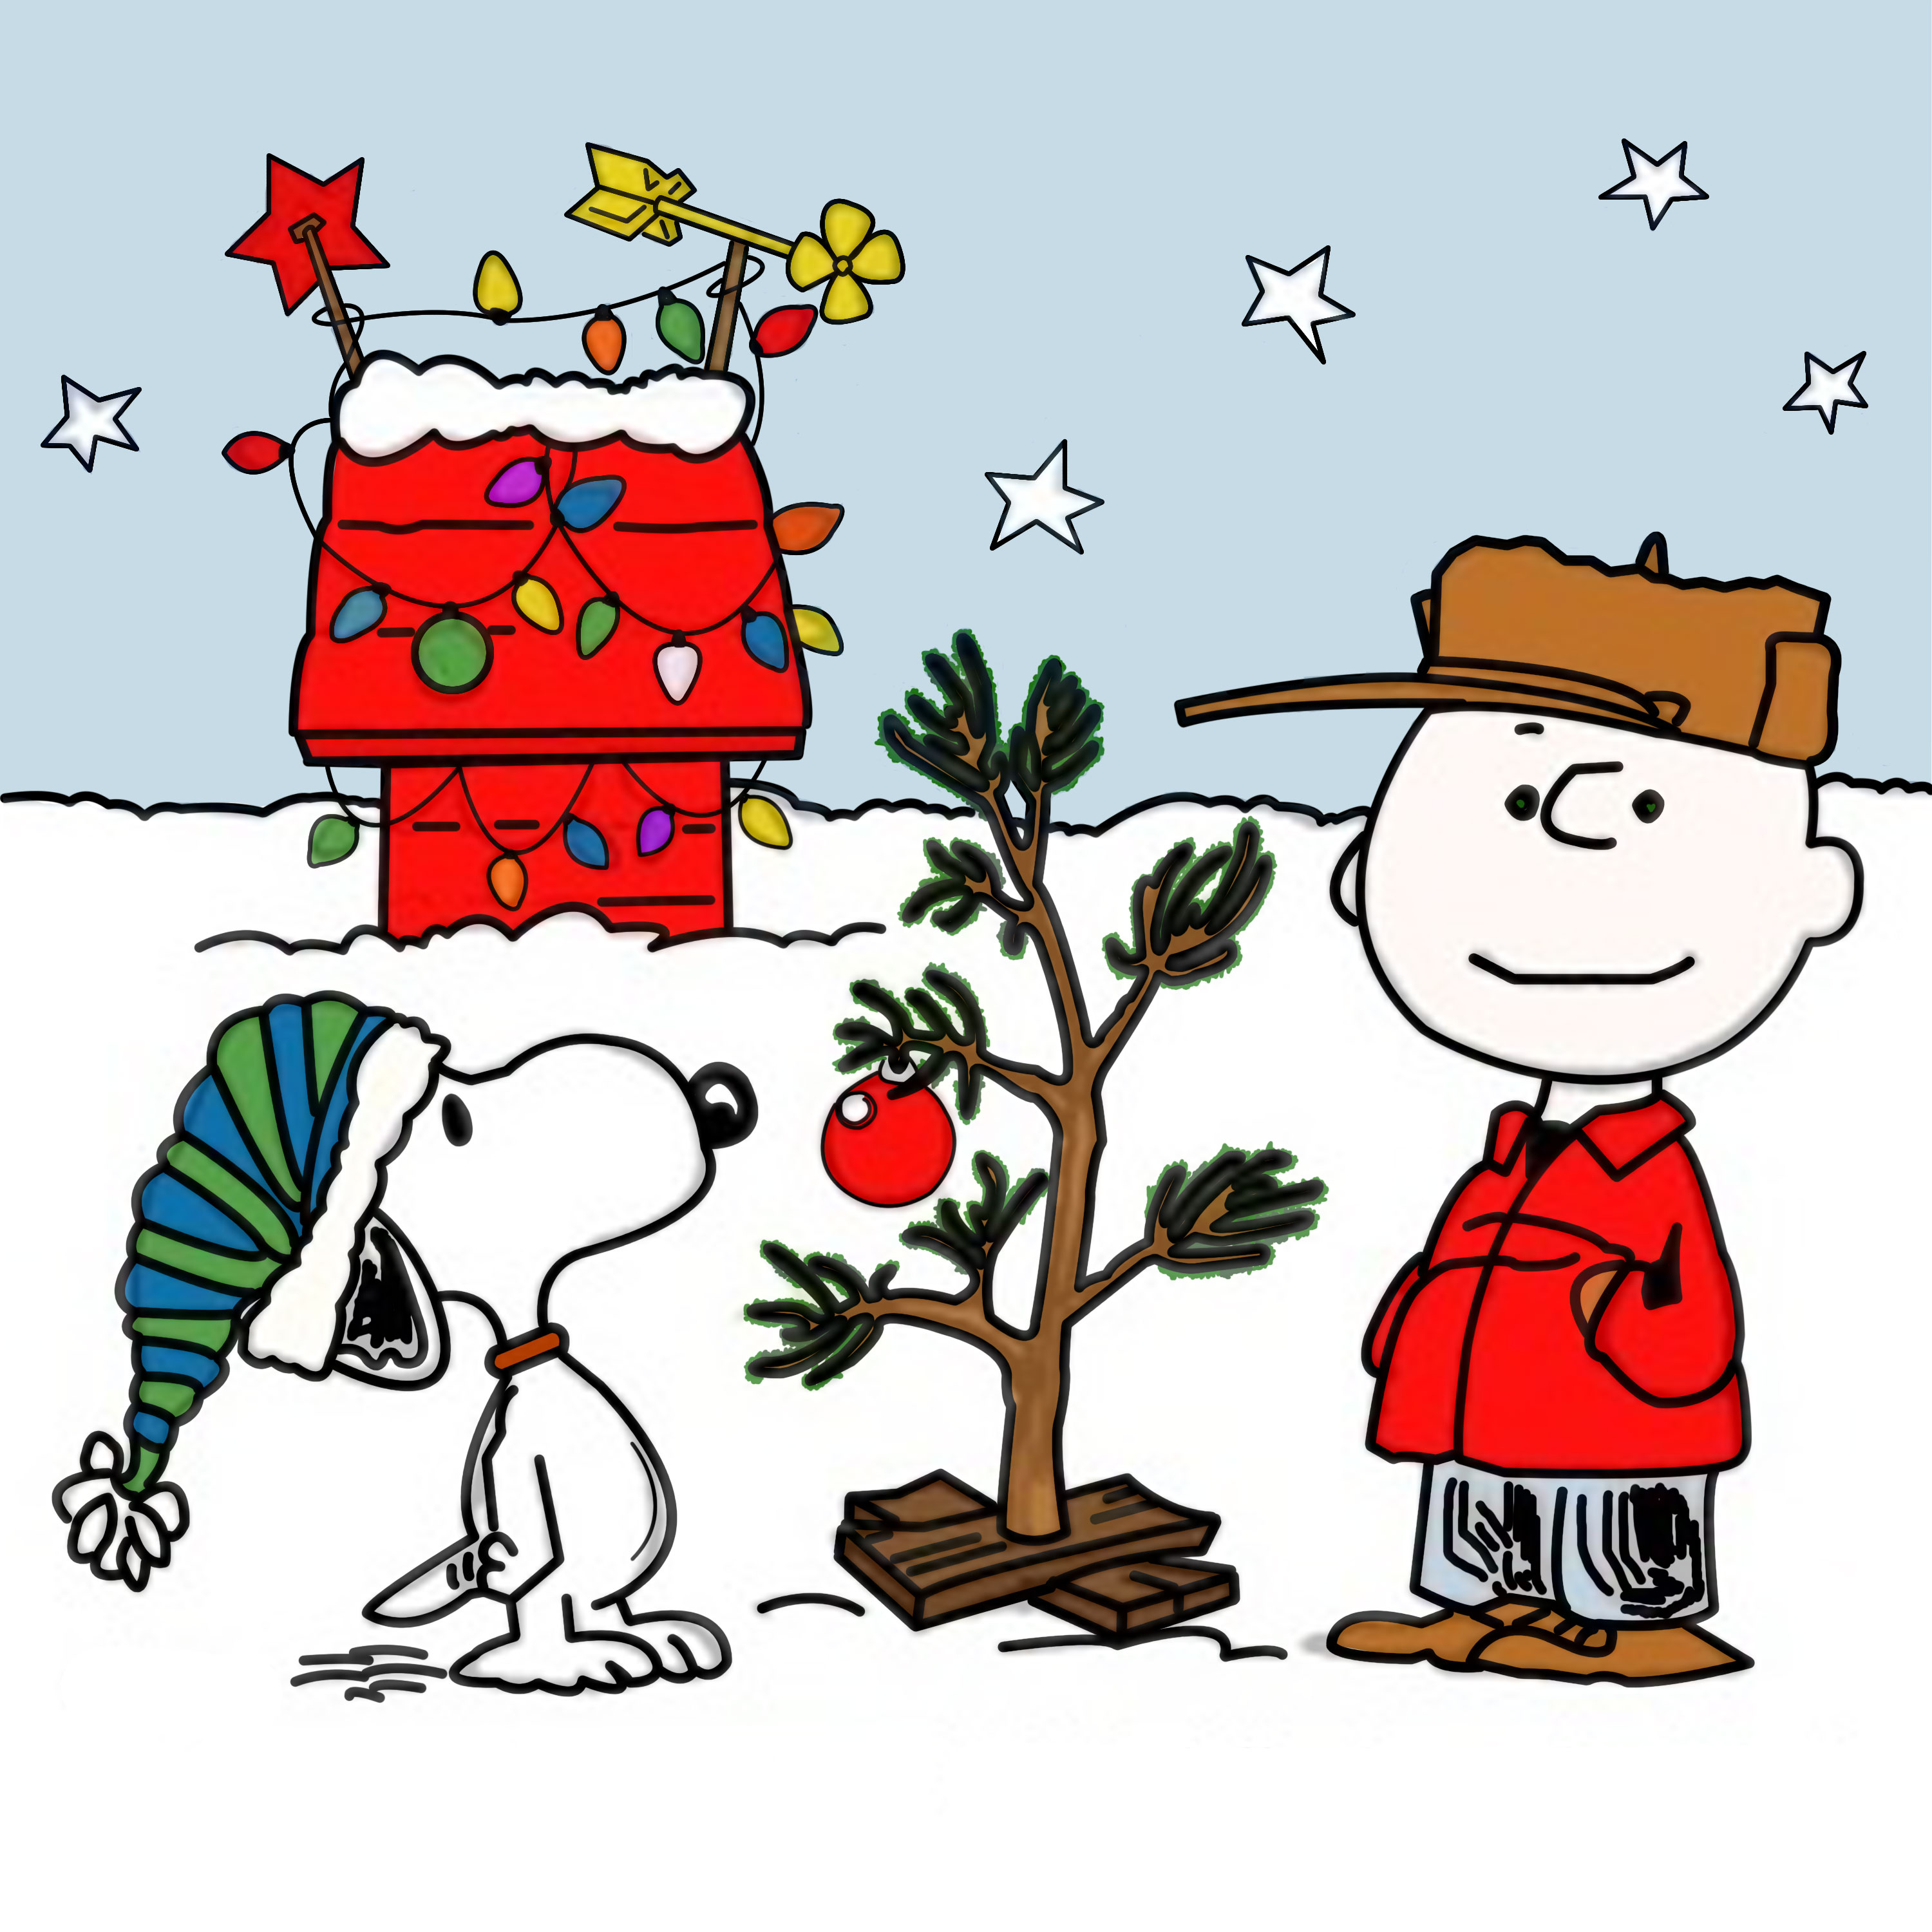 Charlie Brown Christmas tree Not just a tree but a way of looking ZO2LQS1M